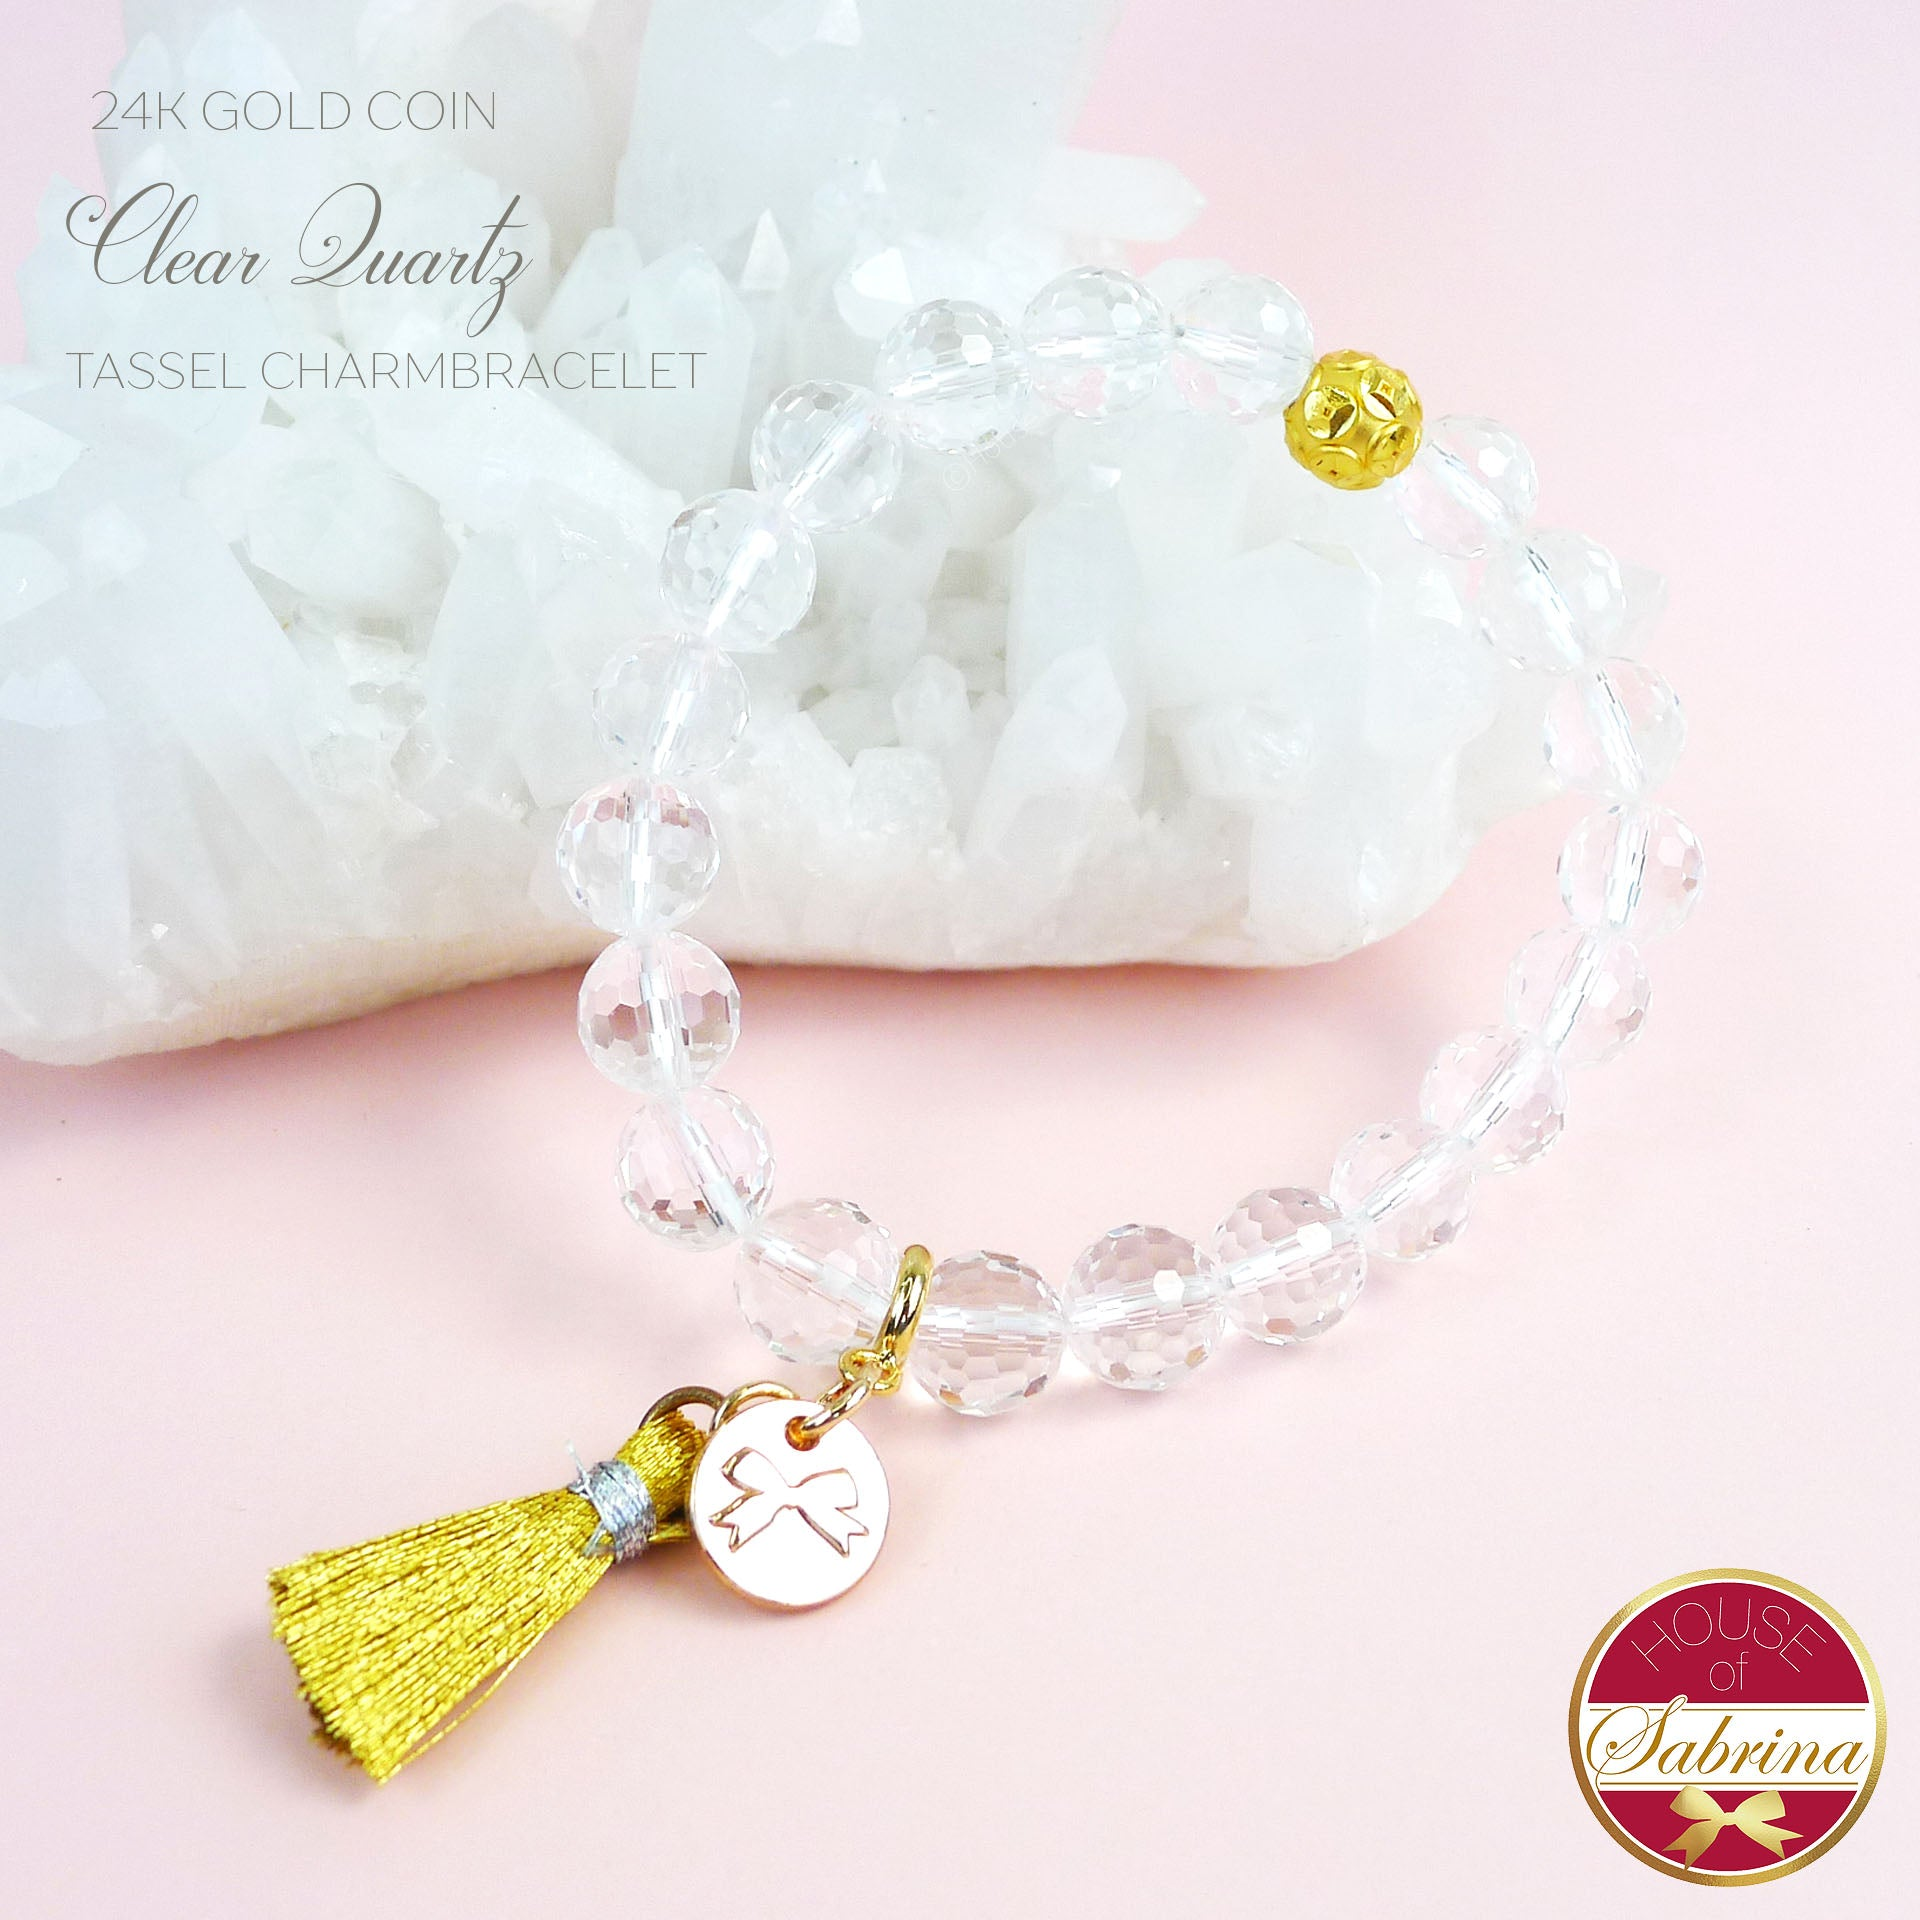 24K GOLD FORTUNE COIN + CLEAR QUARTZ GEMSTONE TASSEL BRACELET